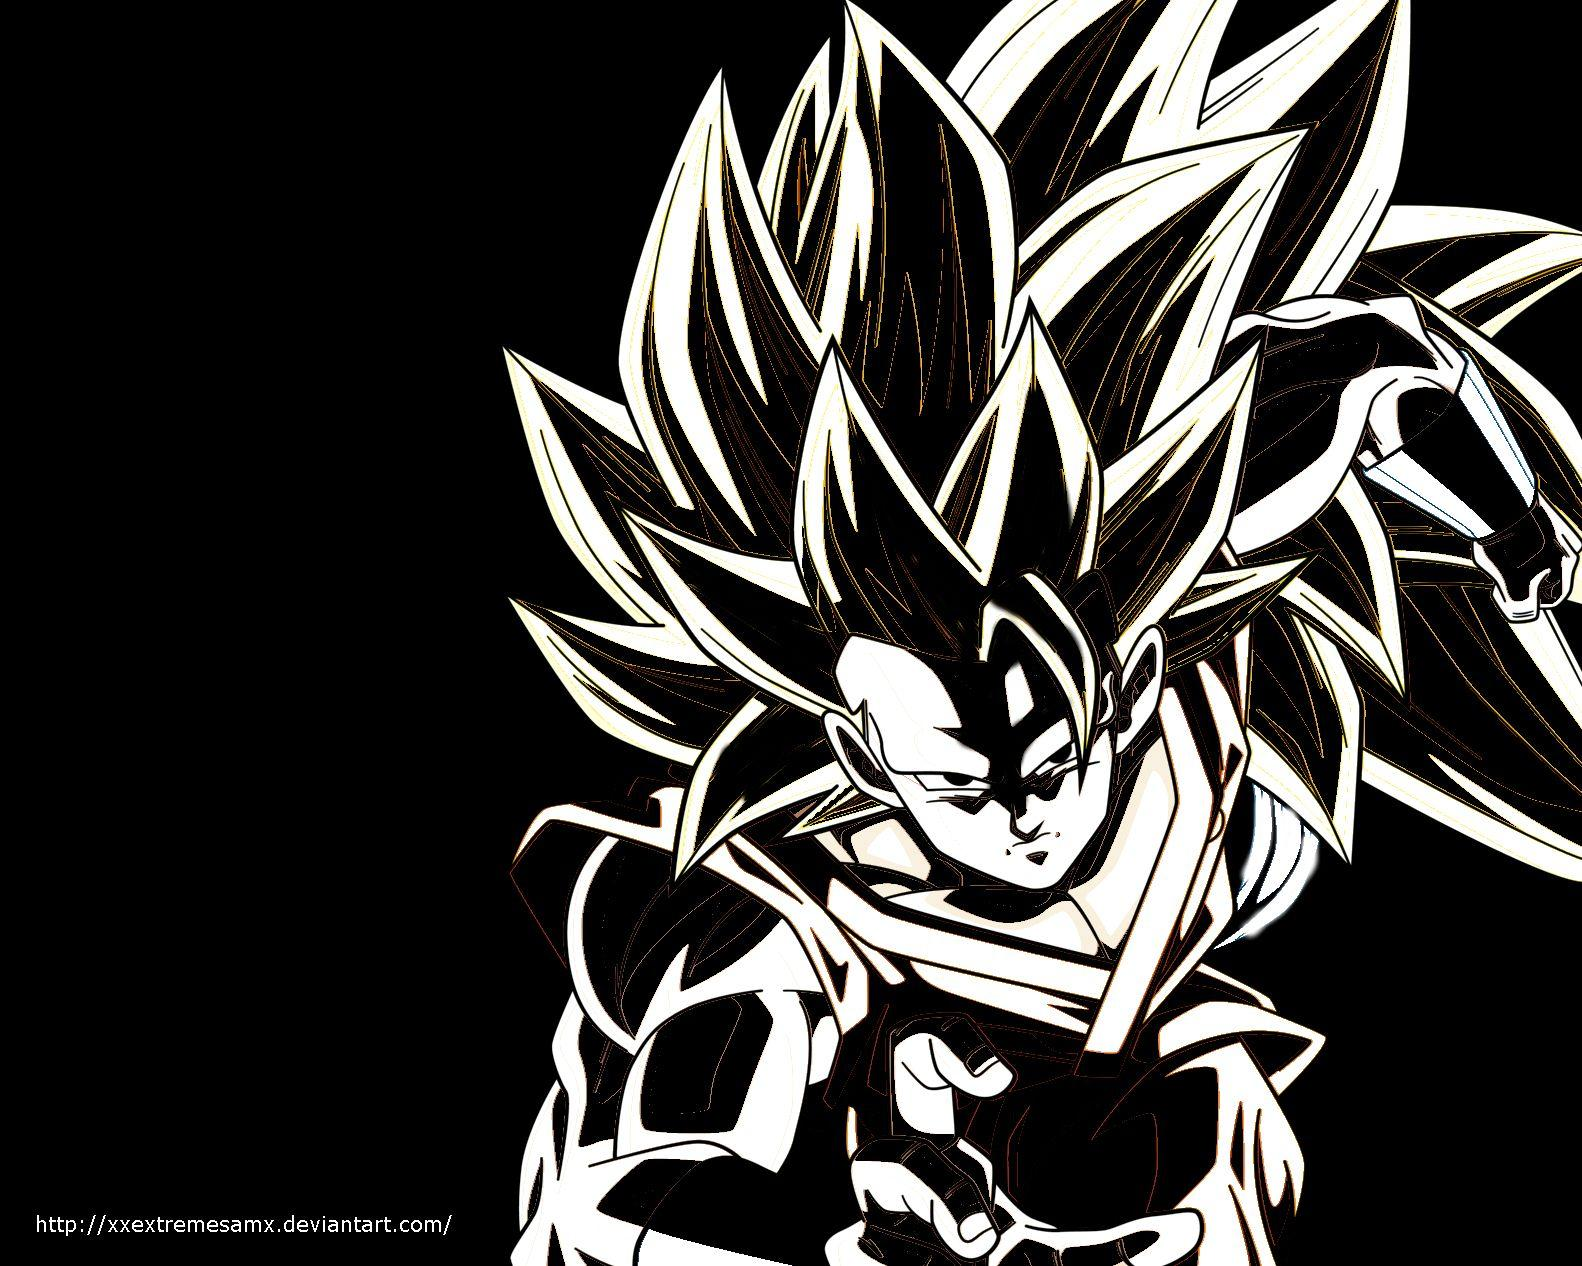 Ssj3 goku wallpaper black and white by xxextremesamx on deviantart